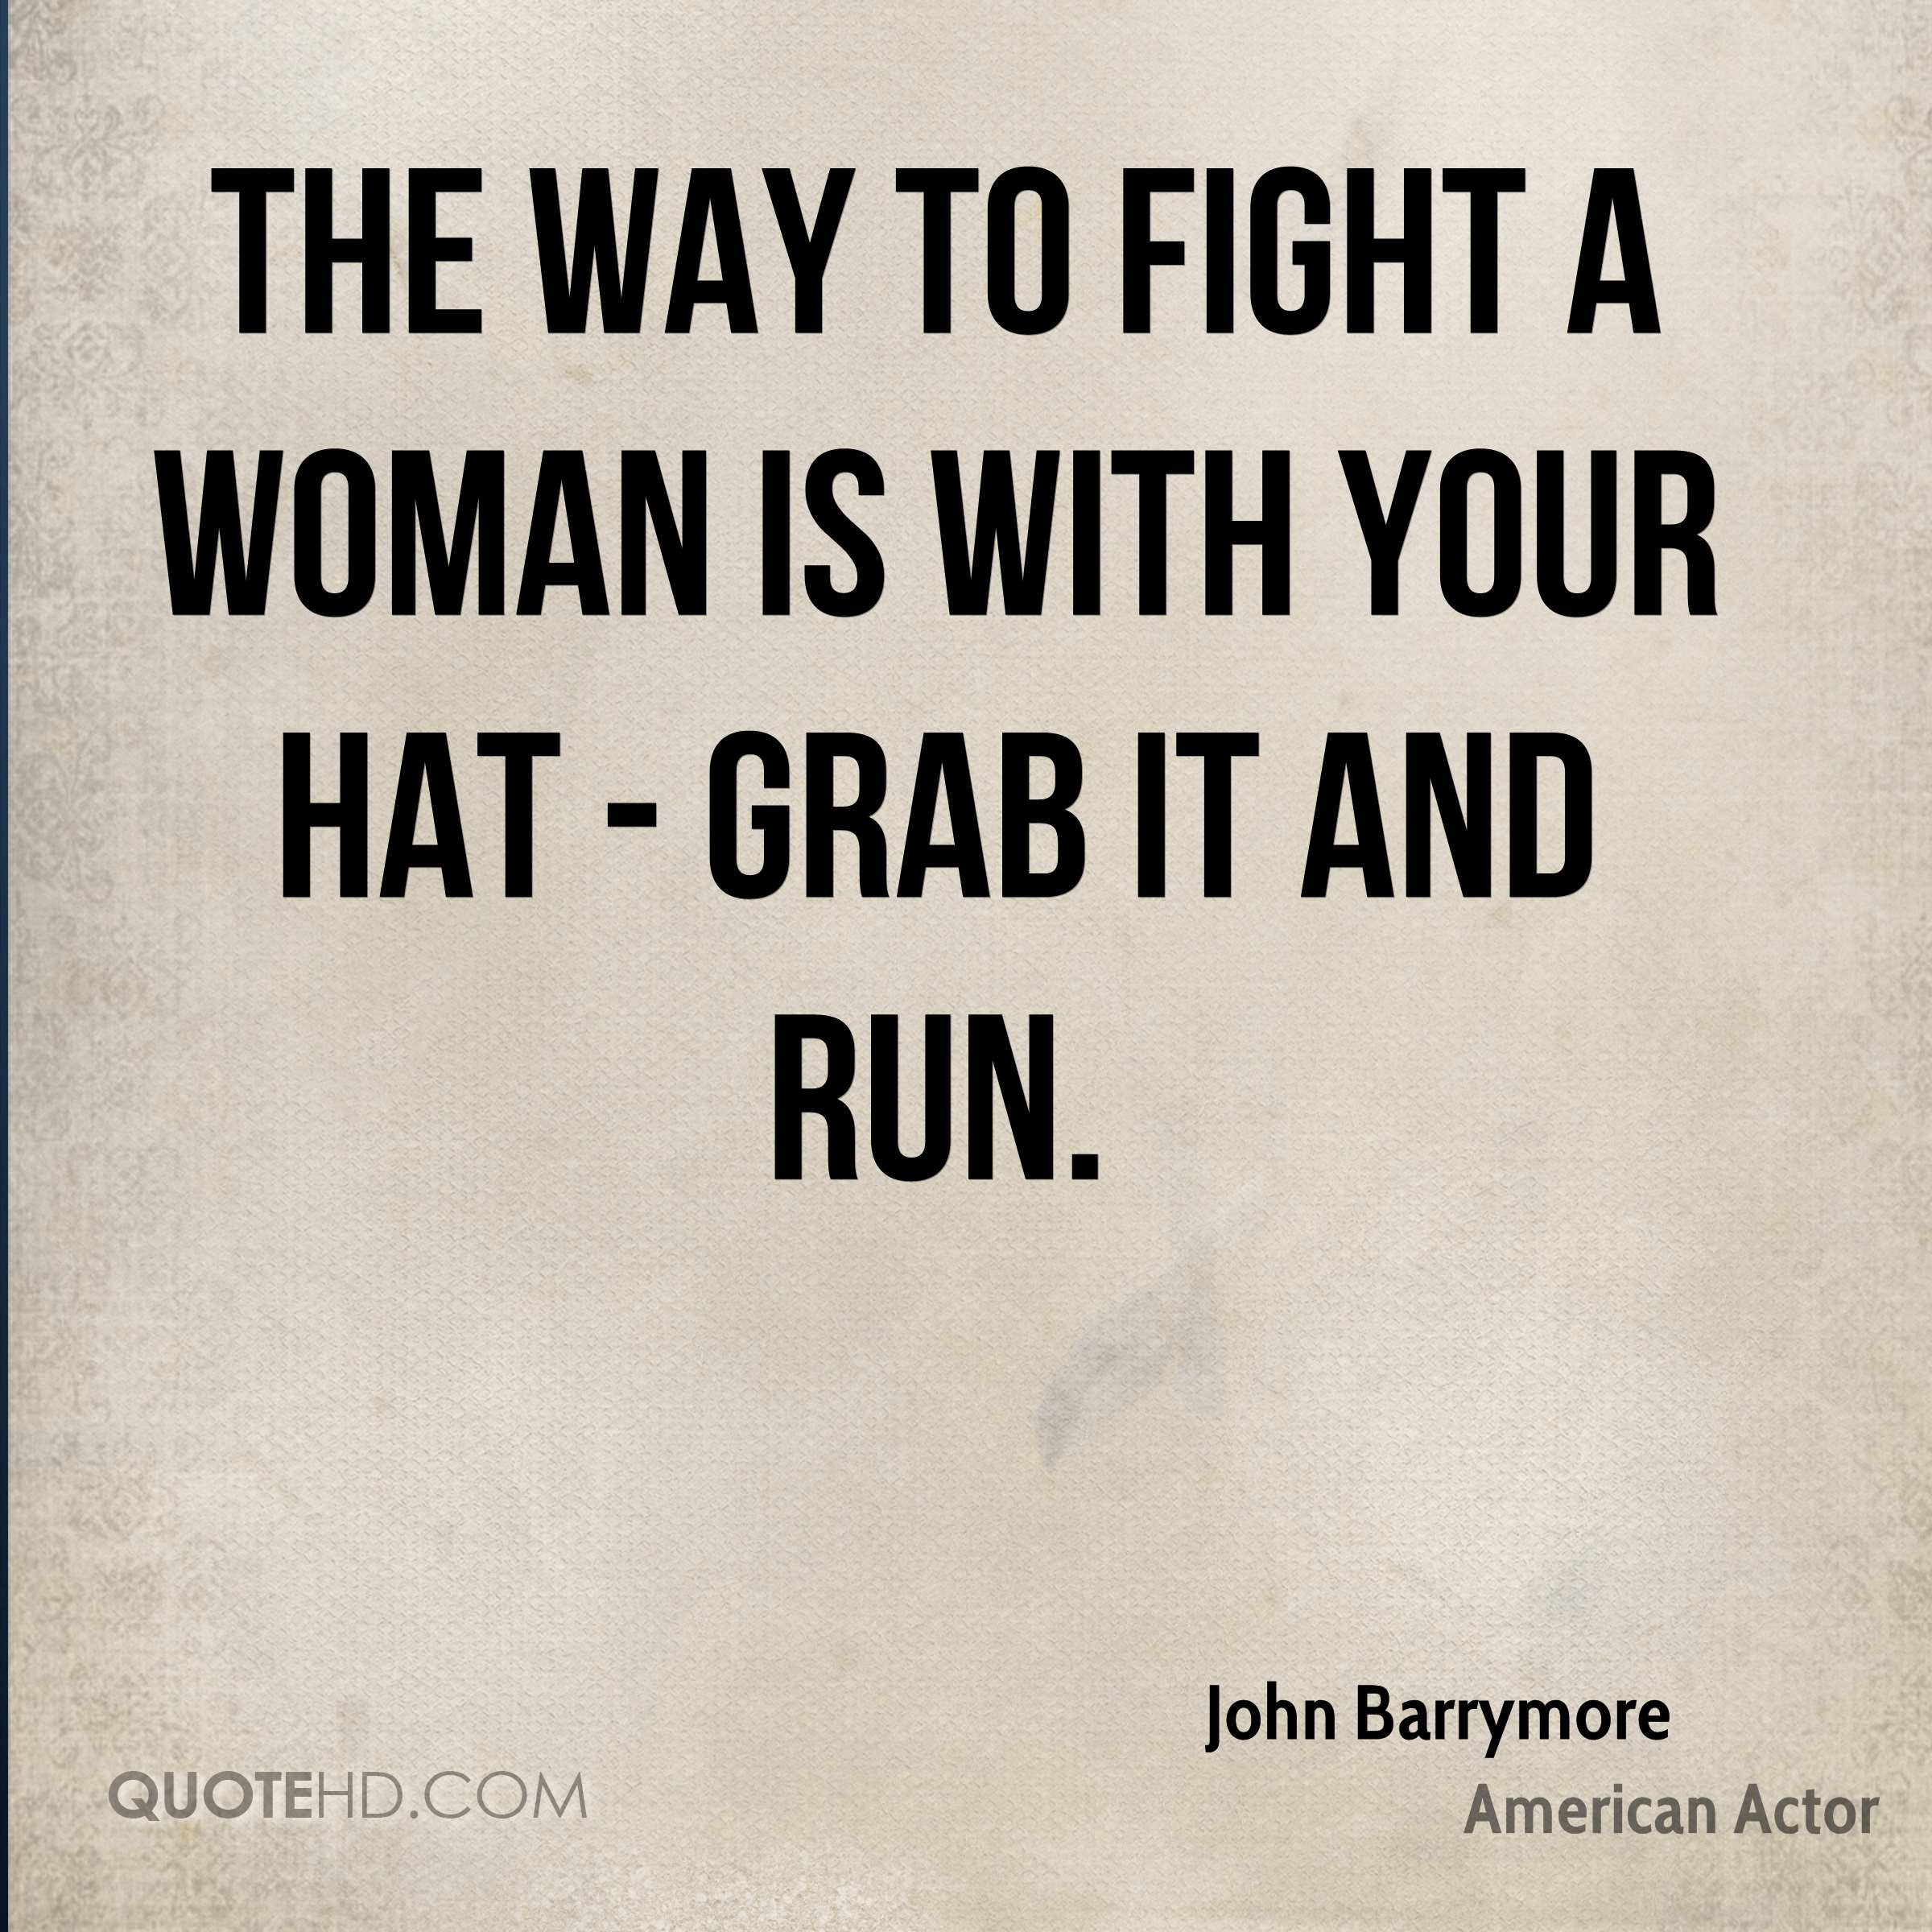 The way to fight a woman is with your hat - grab it and run.